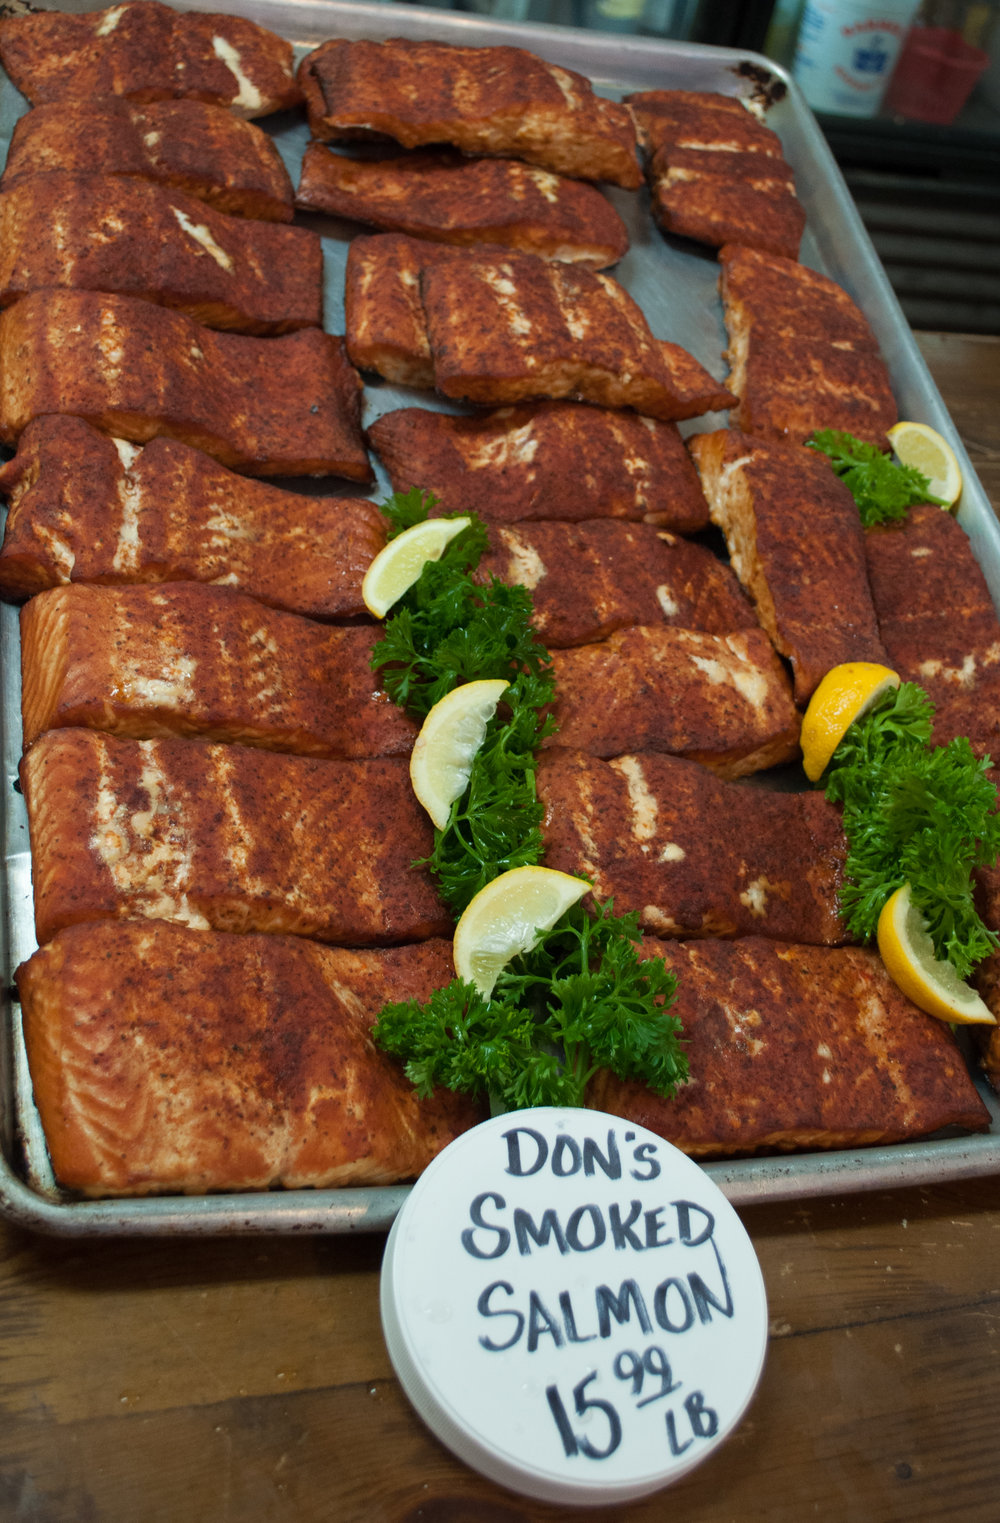 Smoked Salmon made fresh in house every week!